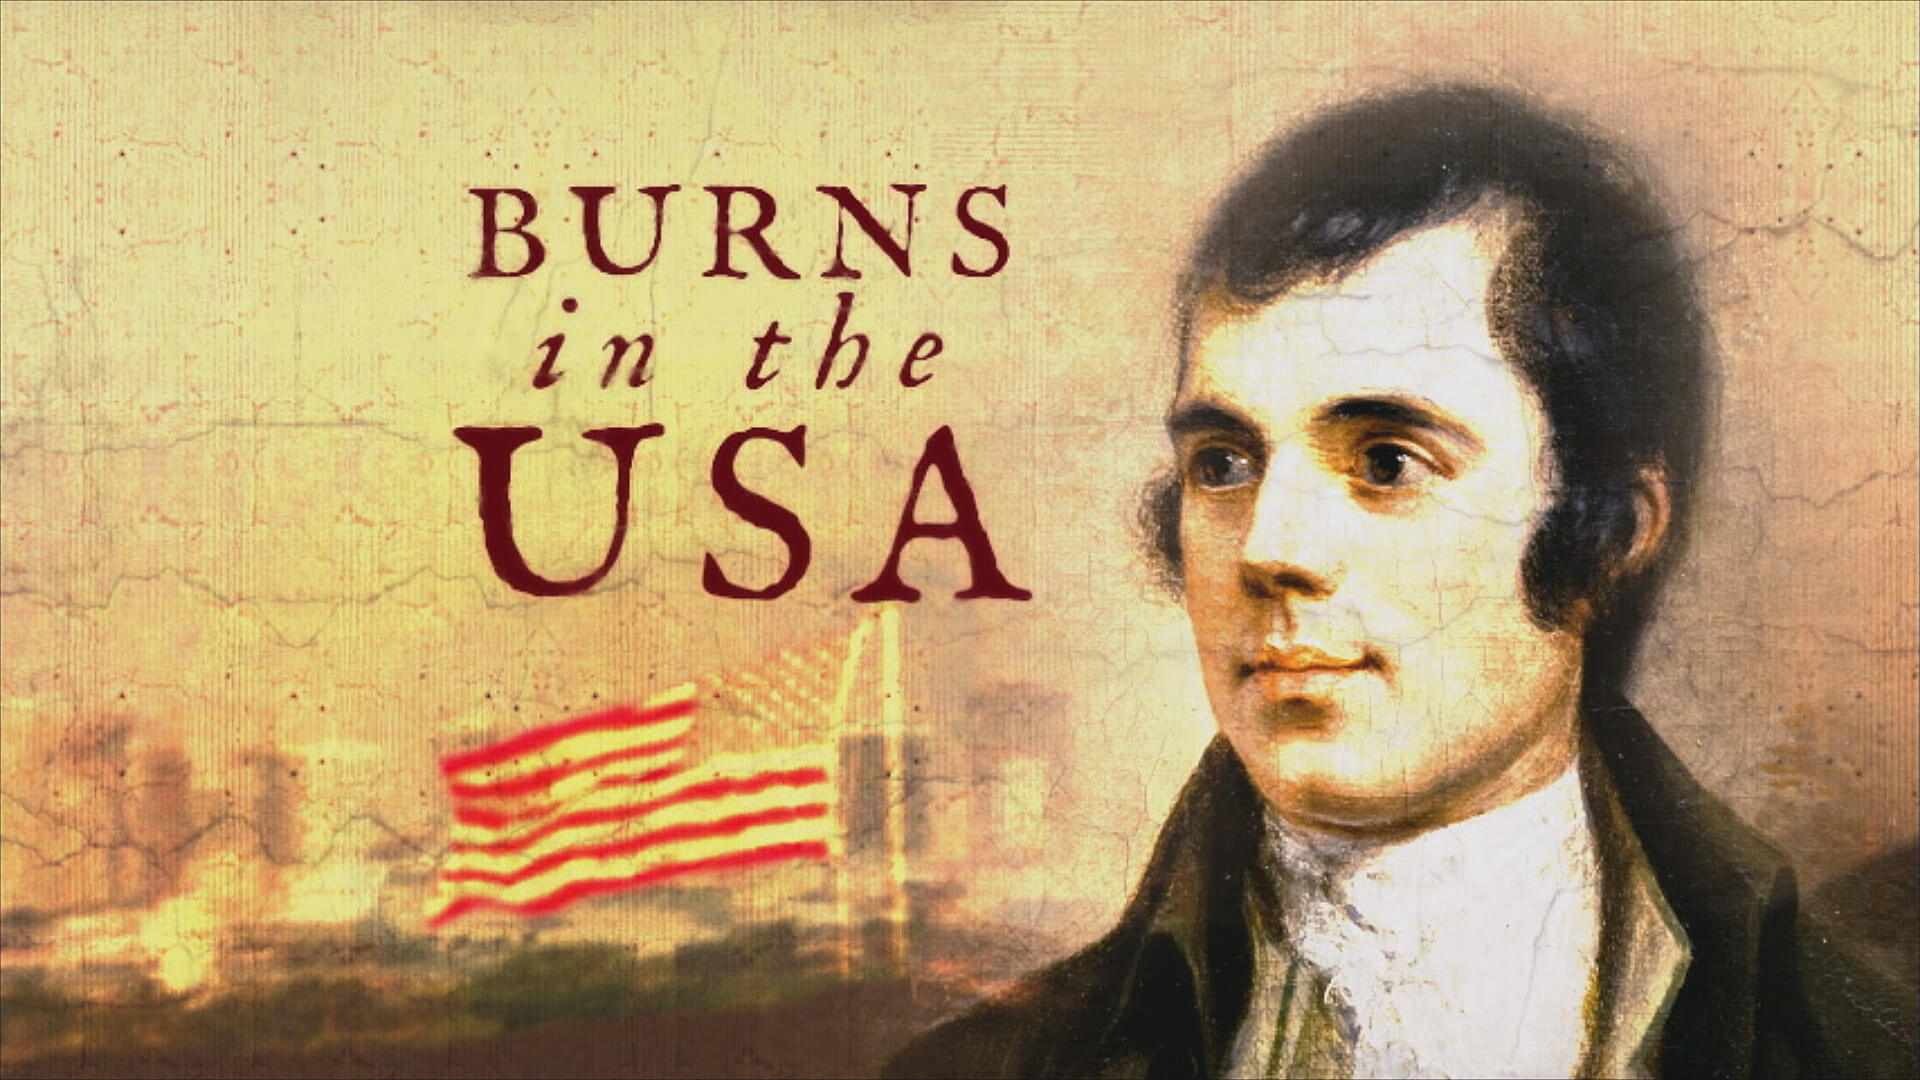 Burns In the USA